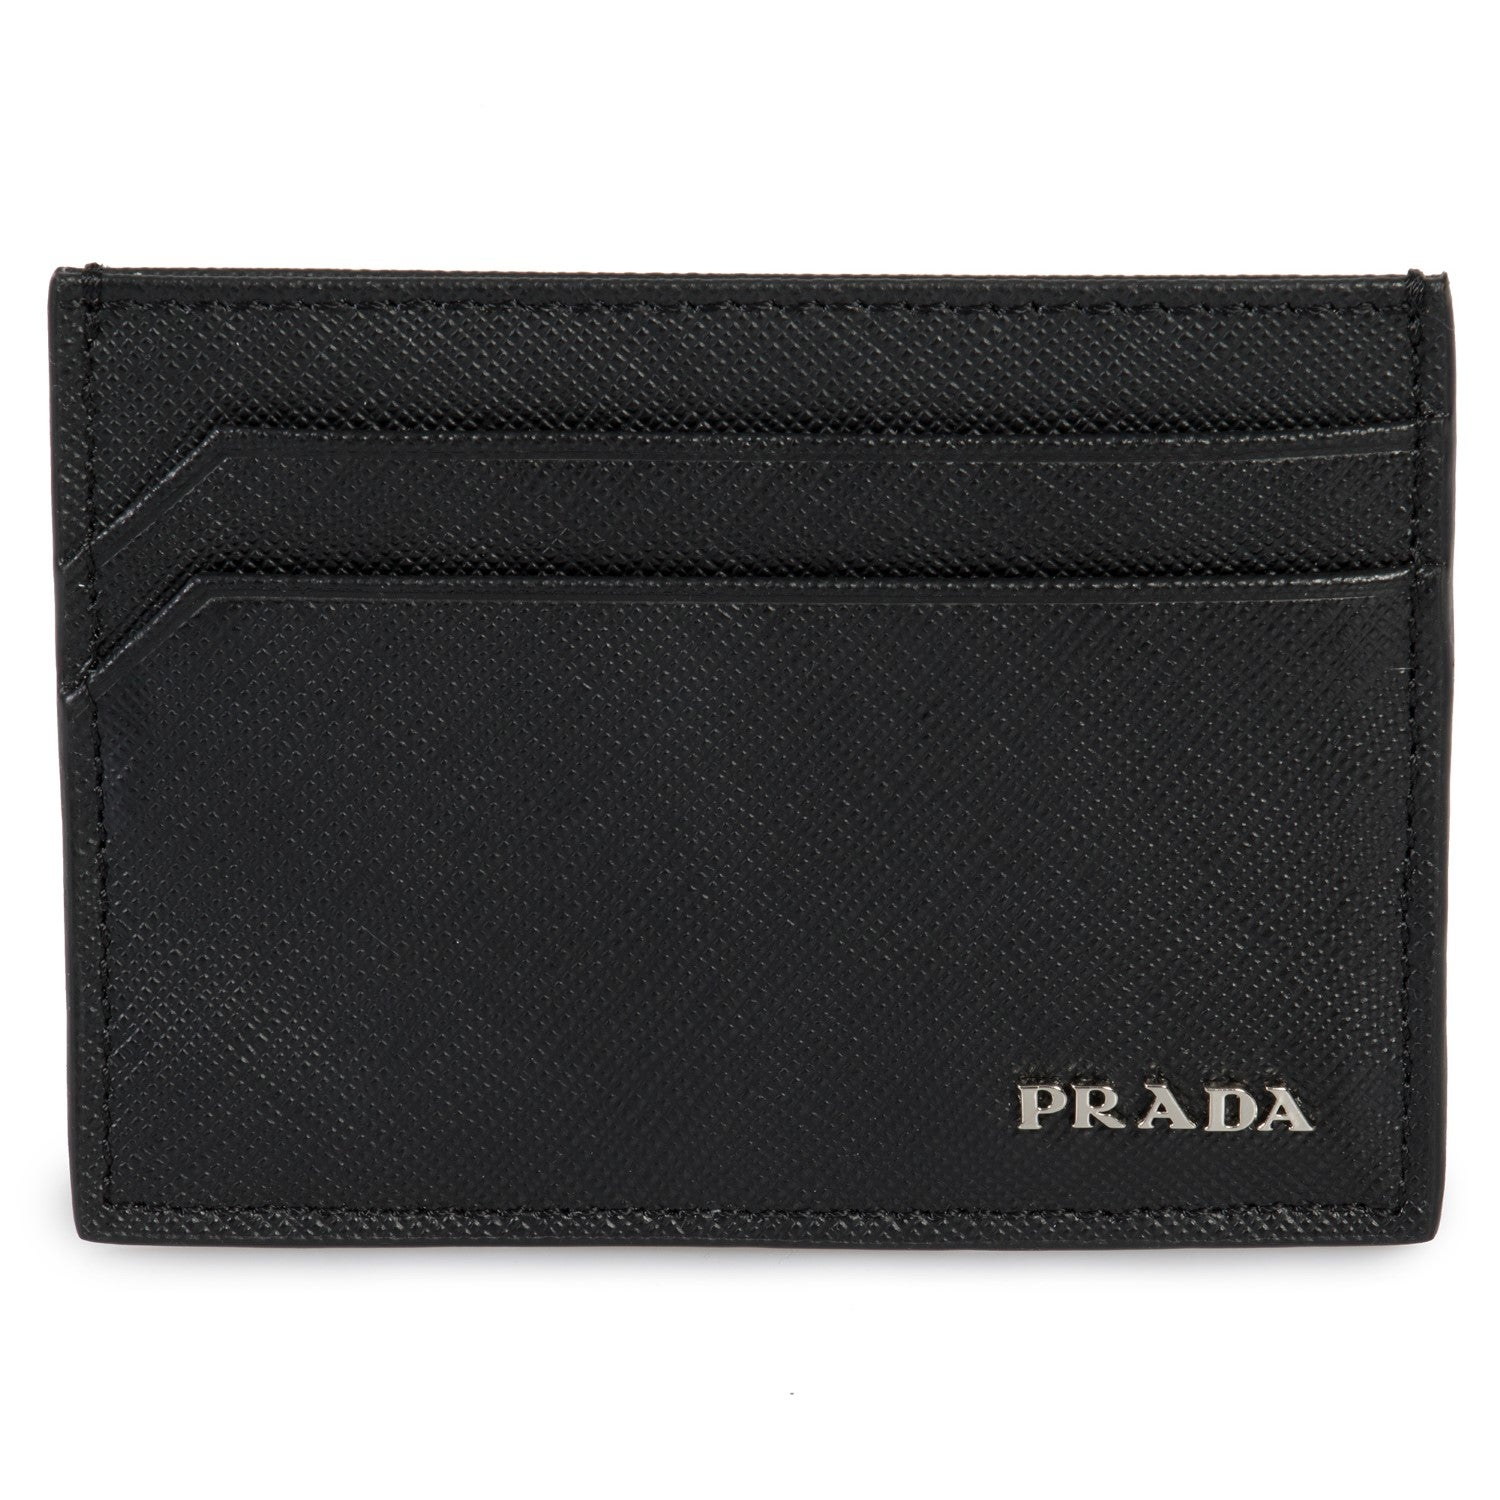 07a604d175a0 Prada + Saffiano Leather Card Holder